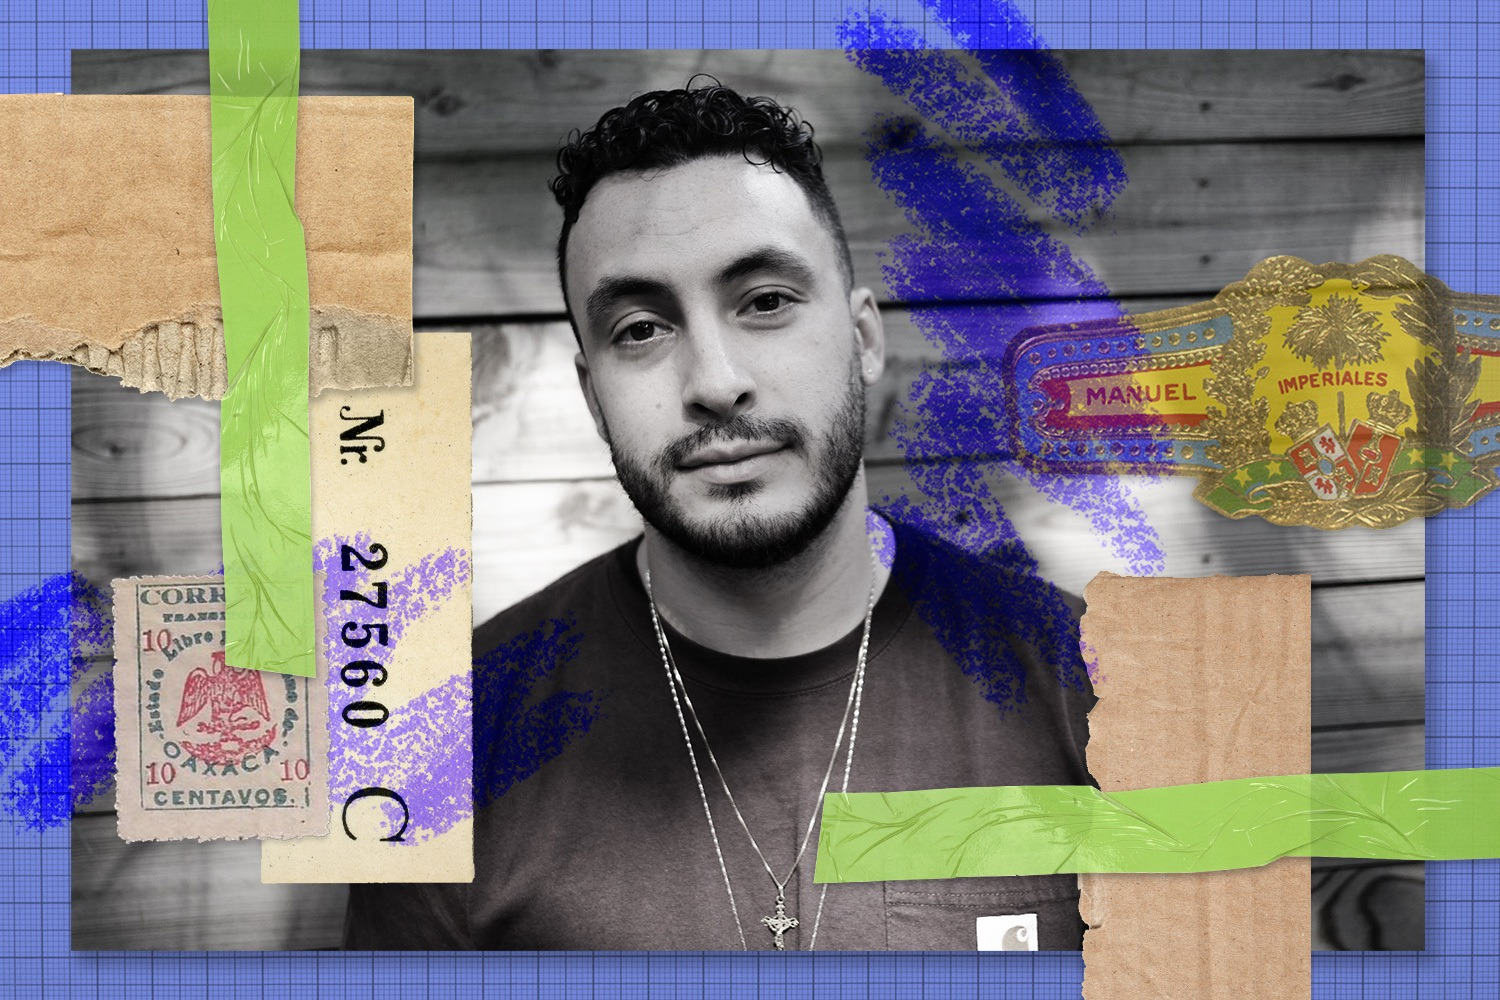 Rewrites collage of José Cardenas, black and white portrait with cardboard scraps, green tape, purple scribbles, ticket and stamps, and Manuel Lopez Imperiales wrapper of cigar. August 2021